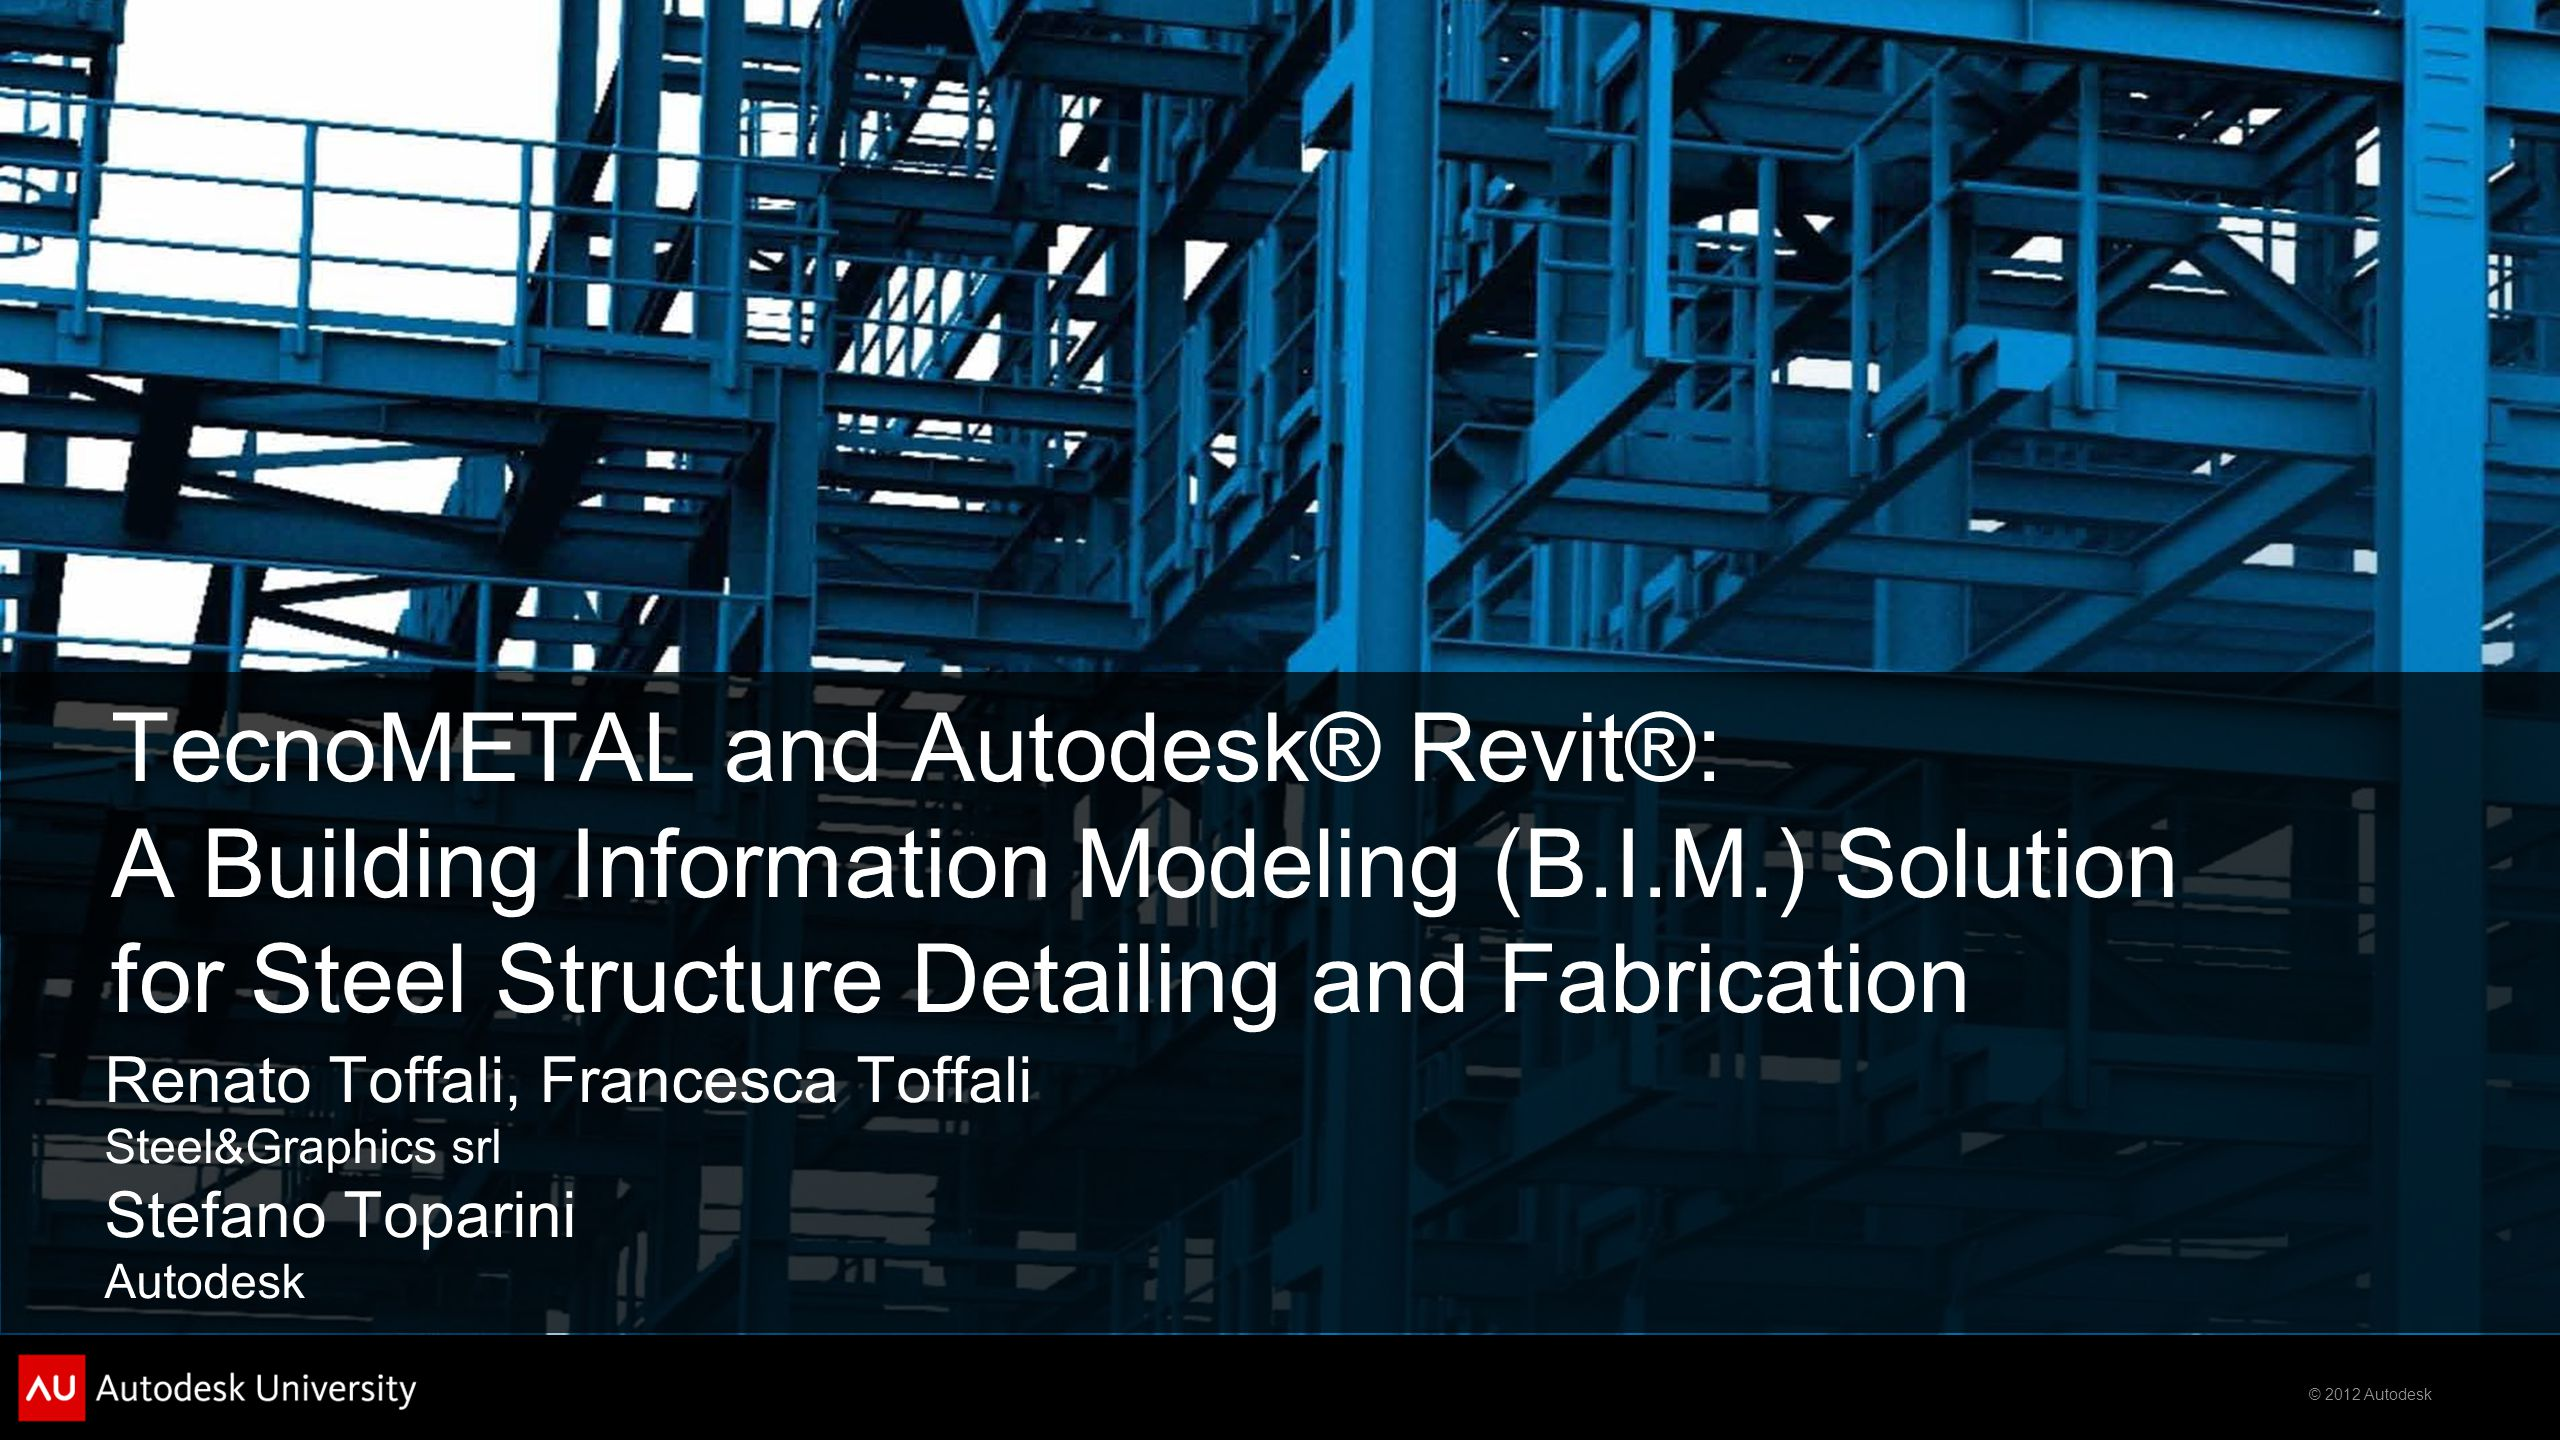 TecnoMETAL and Autodesk® Revit®: A Building Information Modeling (B. I